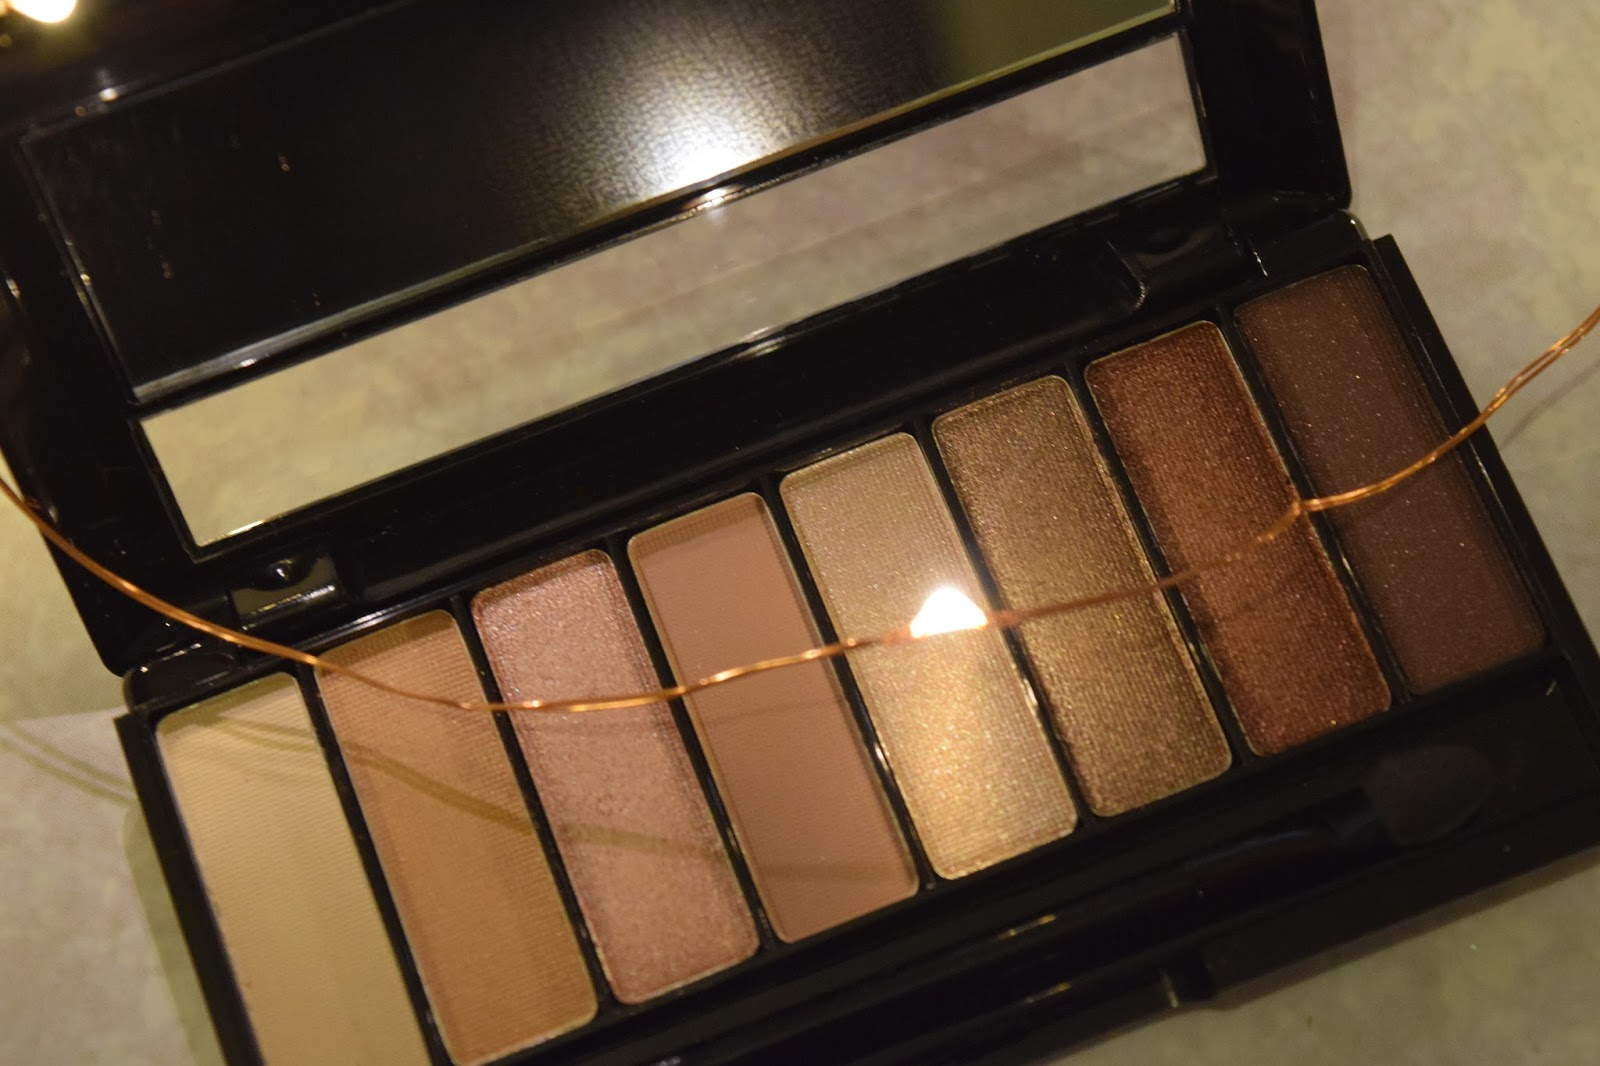 hight resolution of the rimmel magnif eyes eye contouring palette in 002 london nudes calling is actually stunning on the back it has a diagram for which order to use the